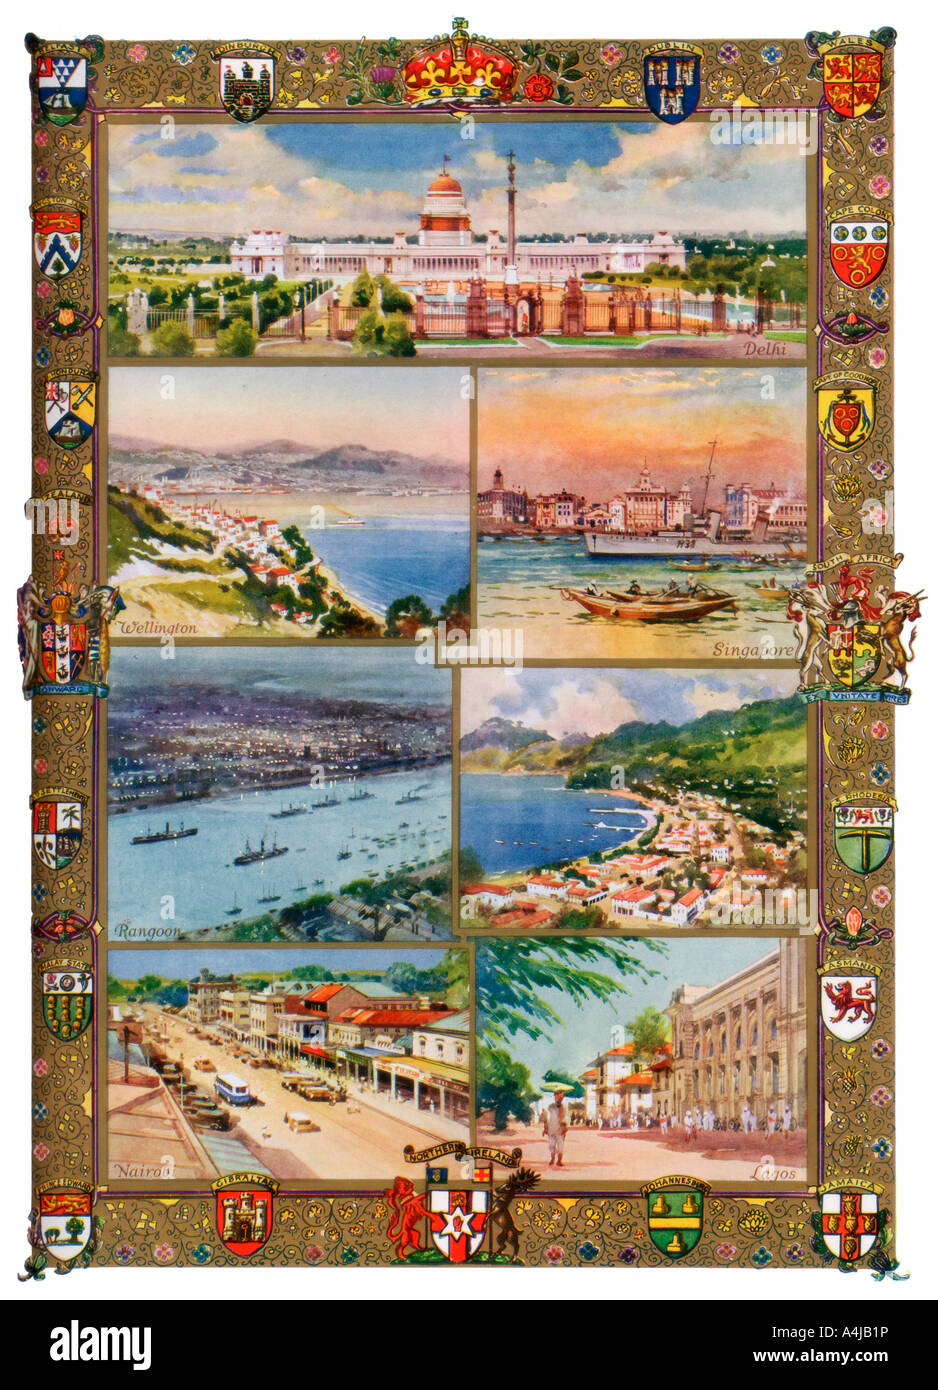 Capitals of the British Empire, 1937. Artist: Charles E Turner - Stock Image